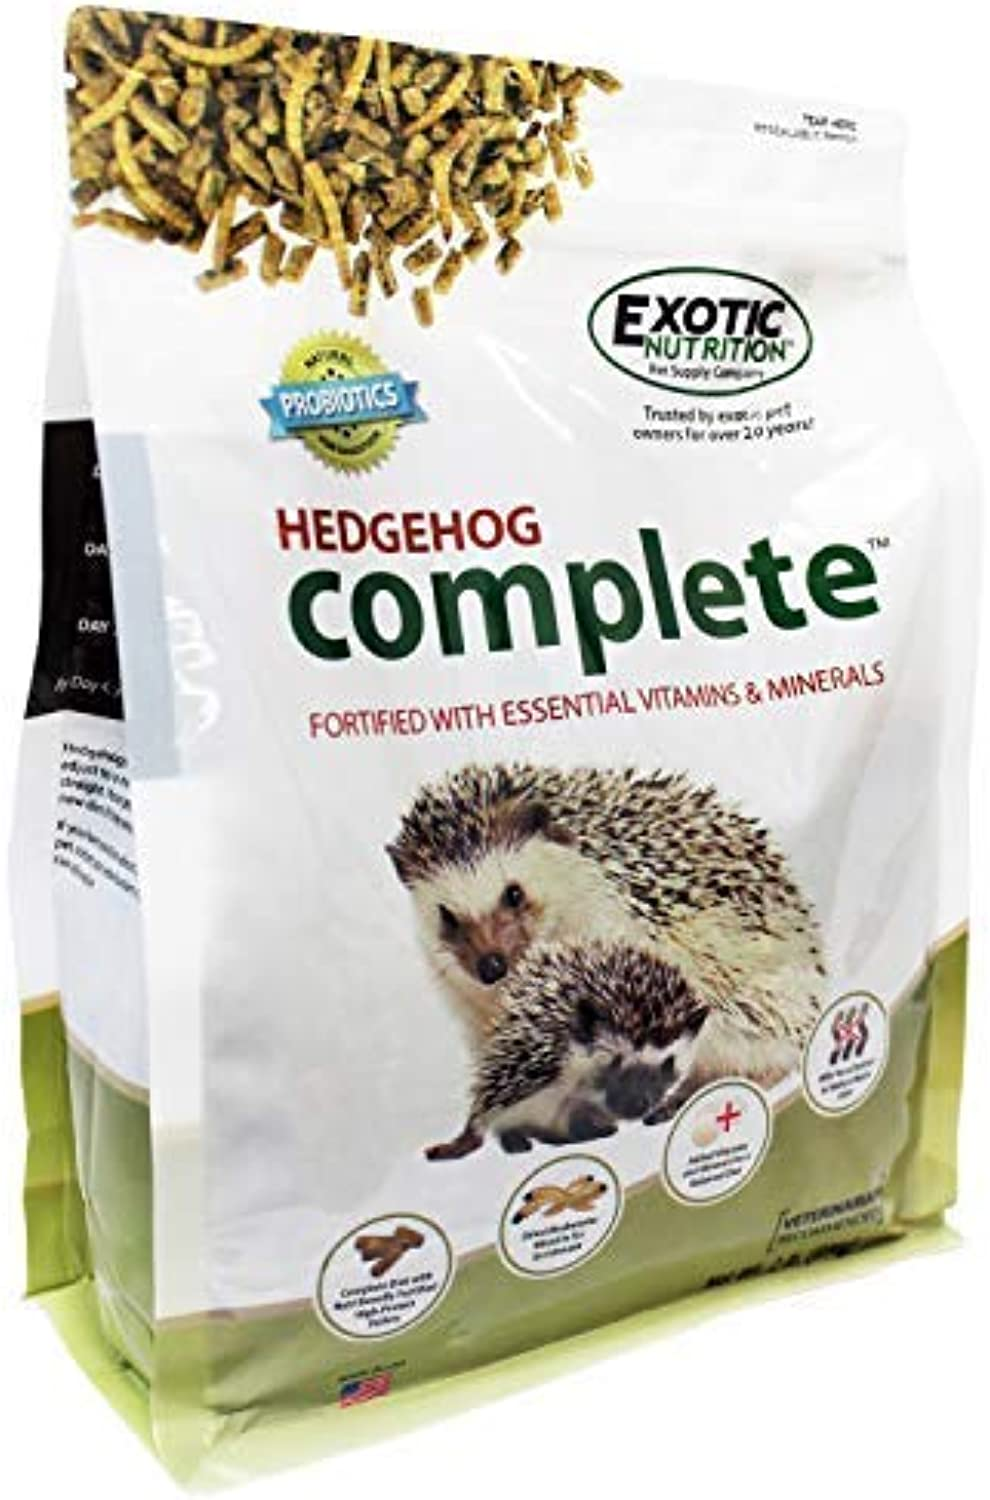 Hedgehog Complete (18 lb.)  Nutritional Food for Hedgehogs